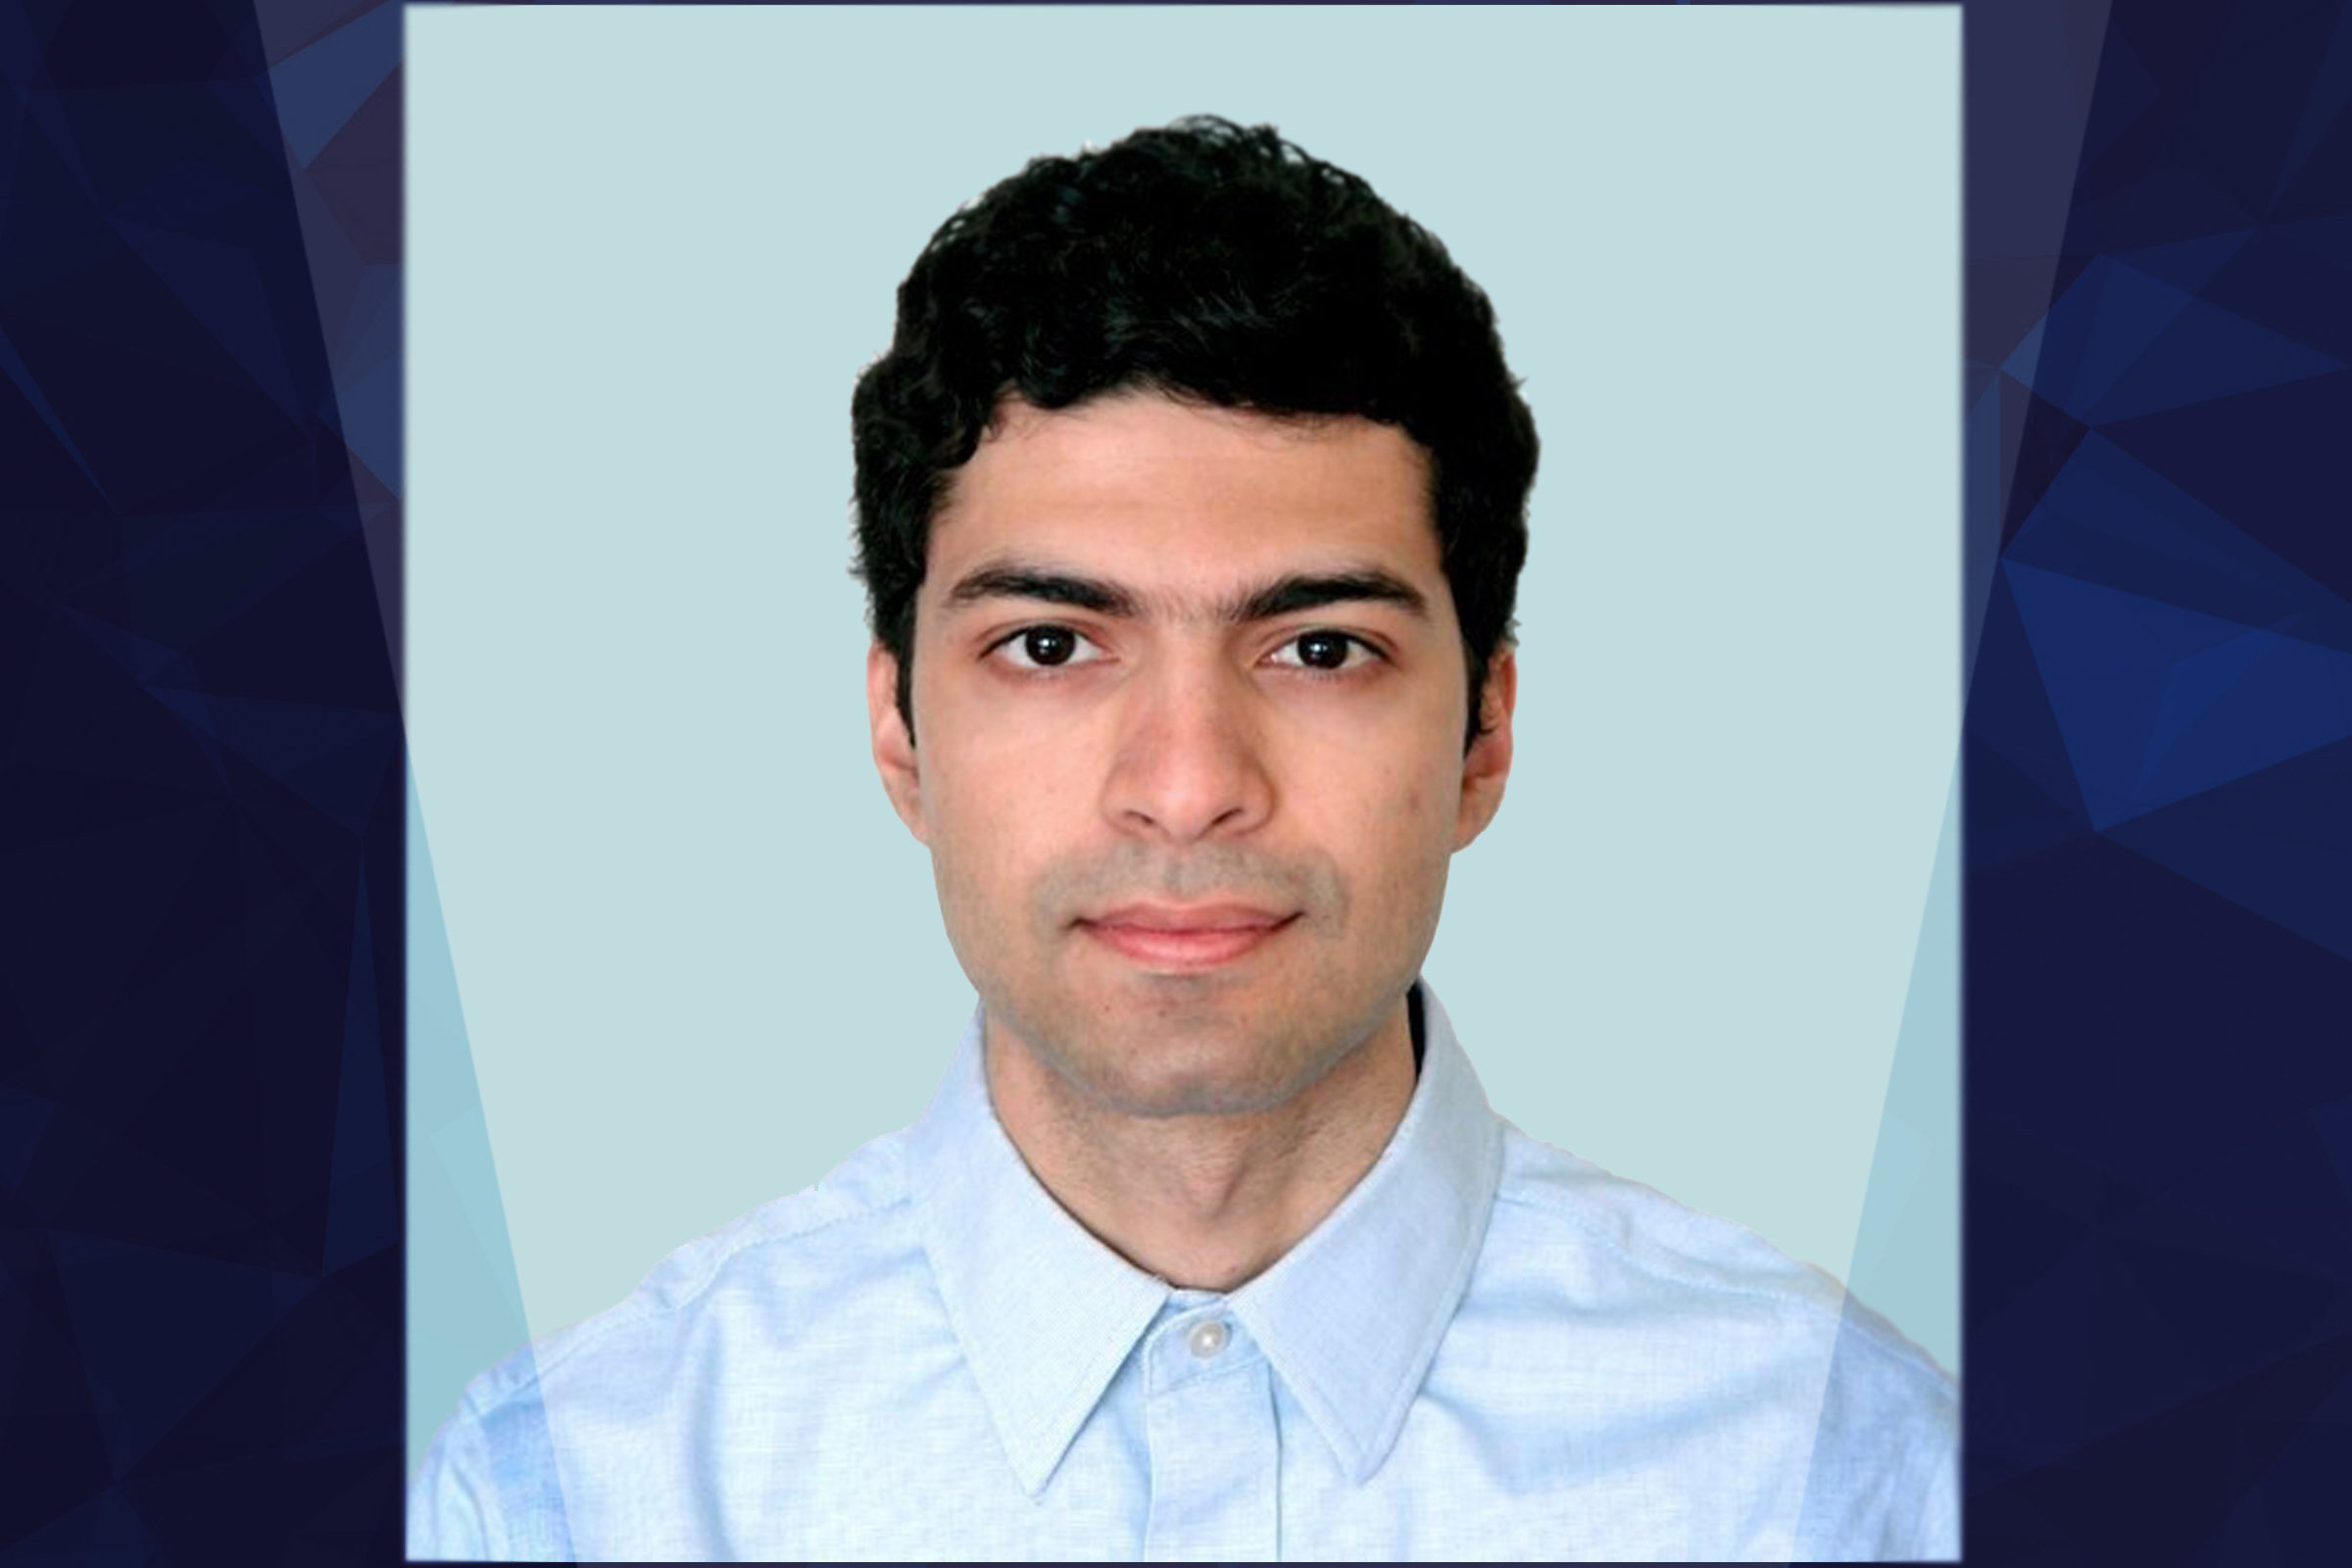 PhD student Shamsheer Singh Chauhan received honorable mention for the 2020 Richard and Eleanor Towner Prize for Outstanding Graduate Student Instructors